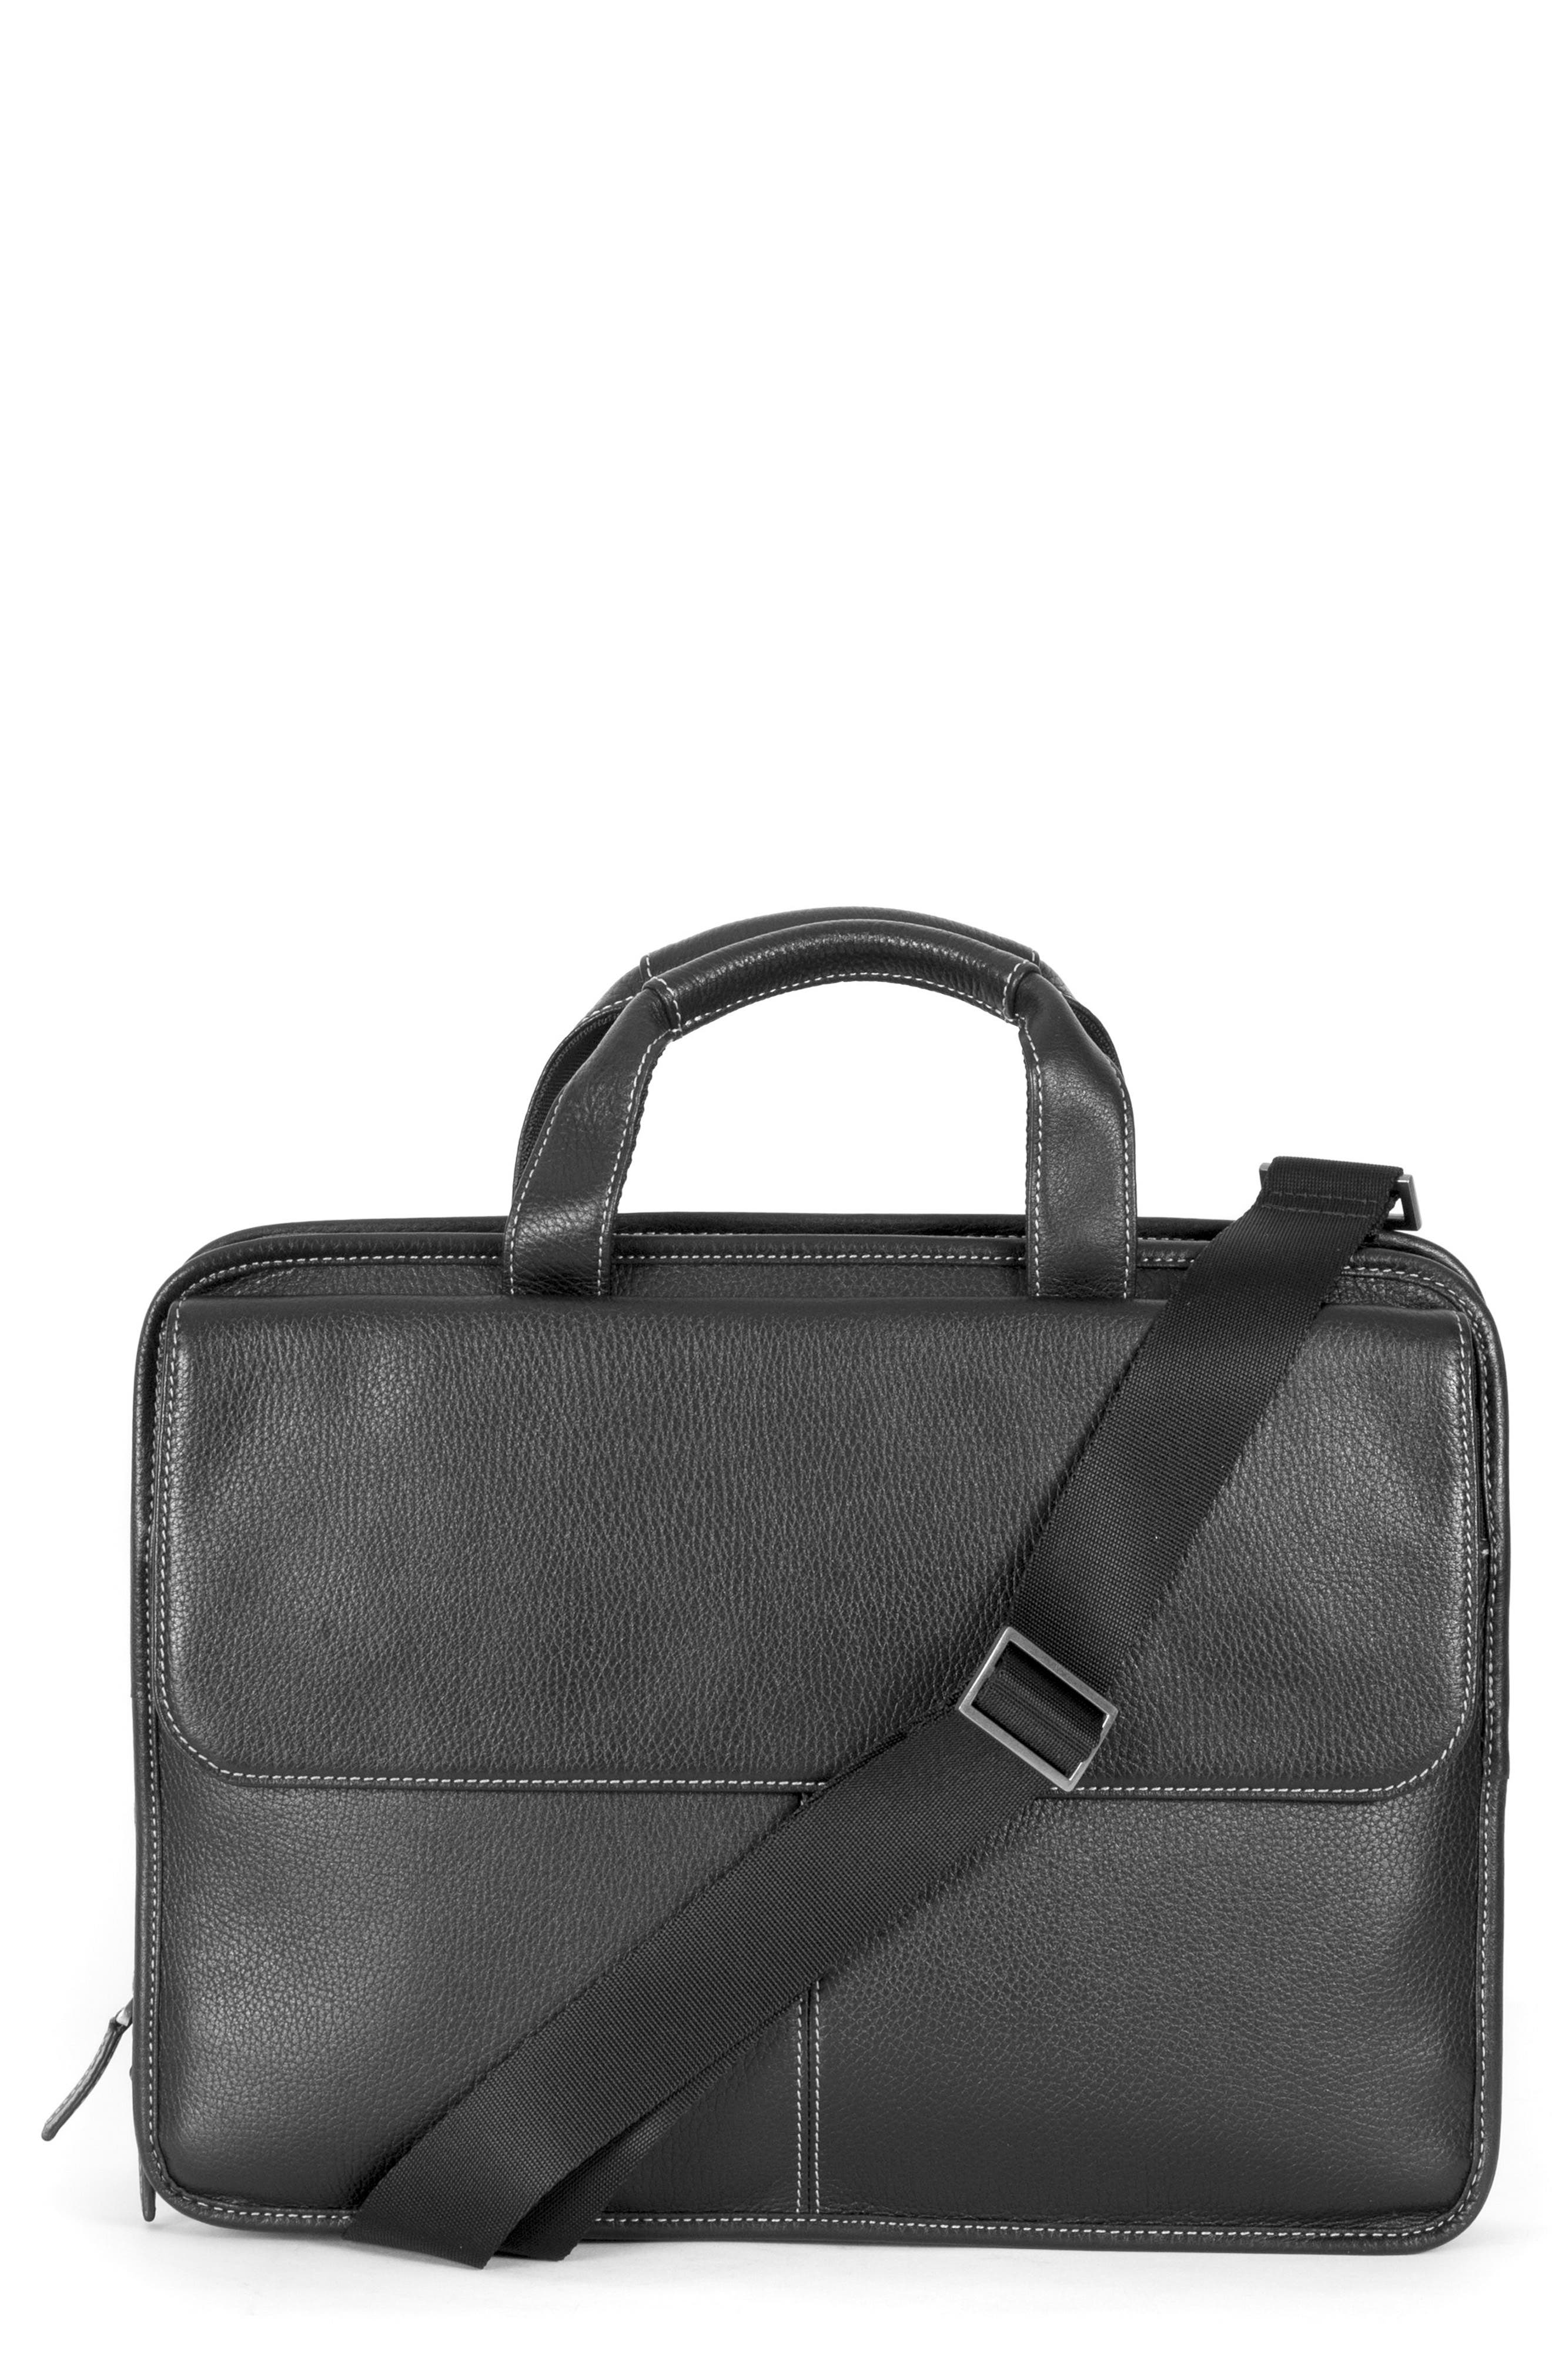 BOCONI, Tyler Leather Briefcase, Main thumbnail 1, color, BLACK